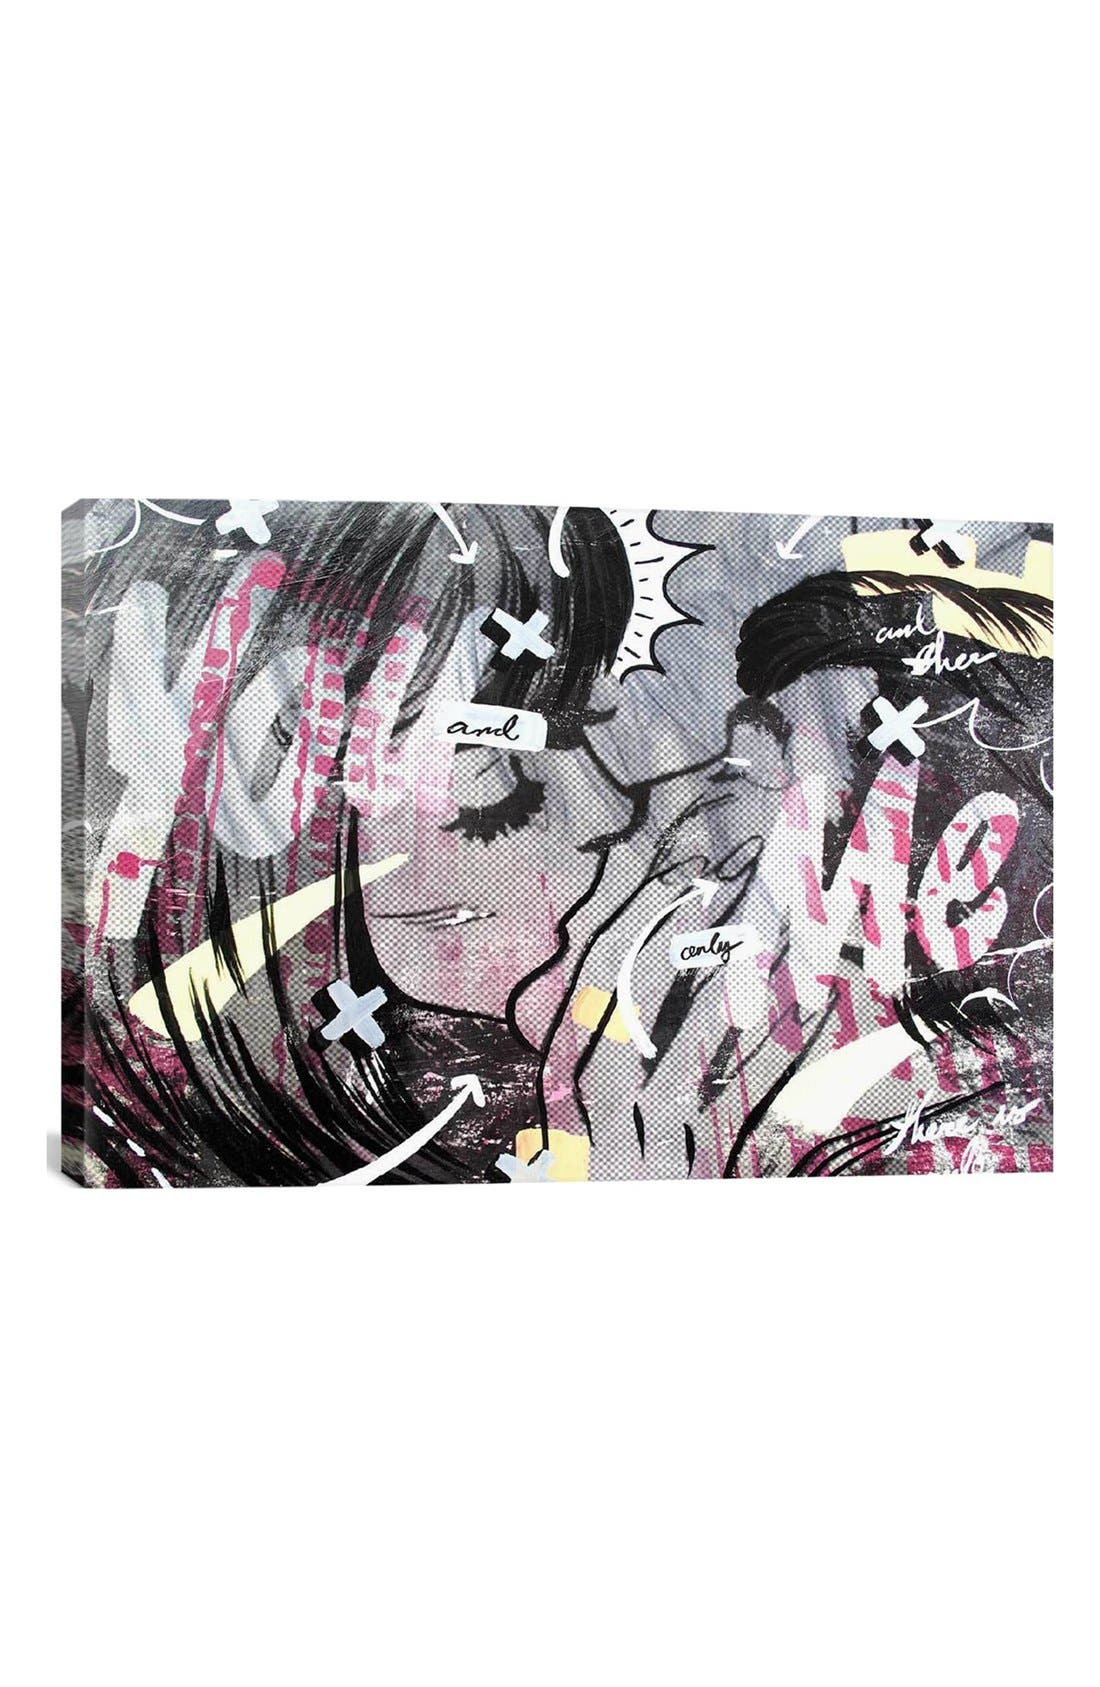 ICANVAS 'And Only' Giclée Print Canvas Art